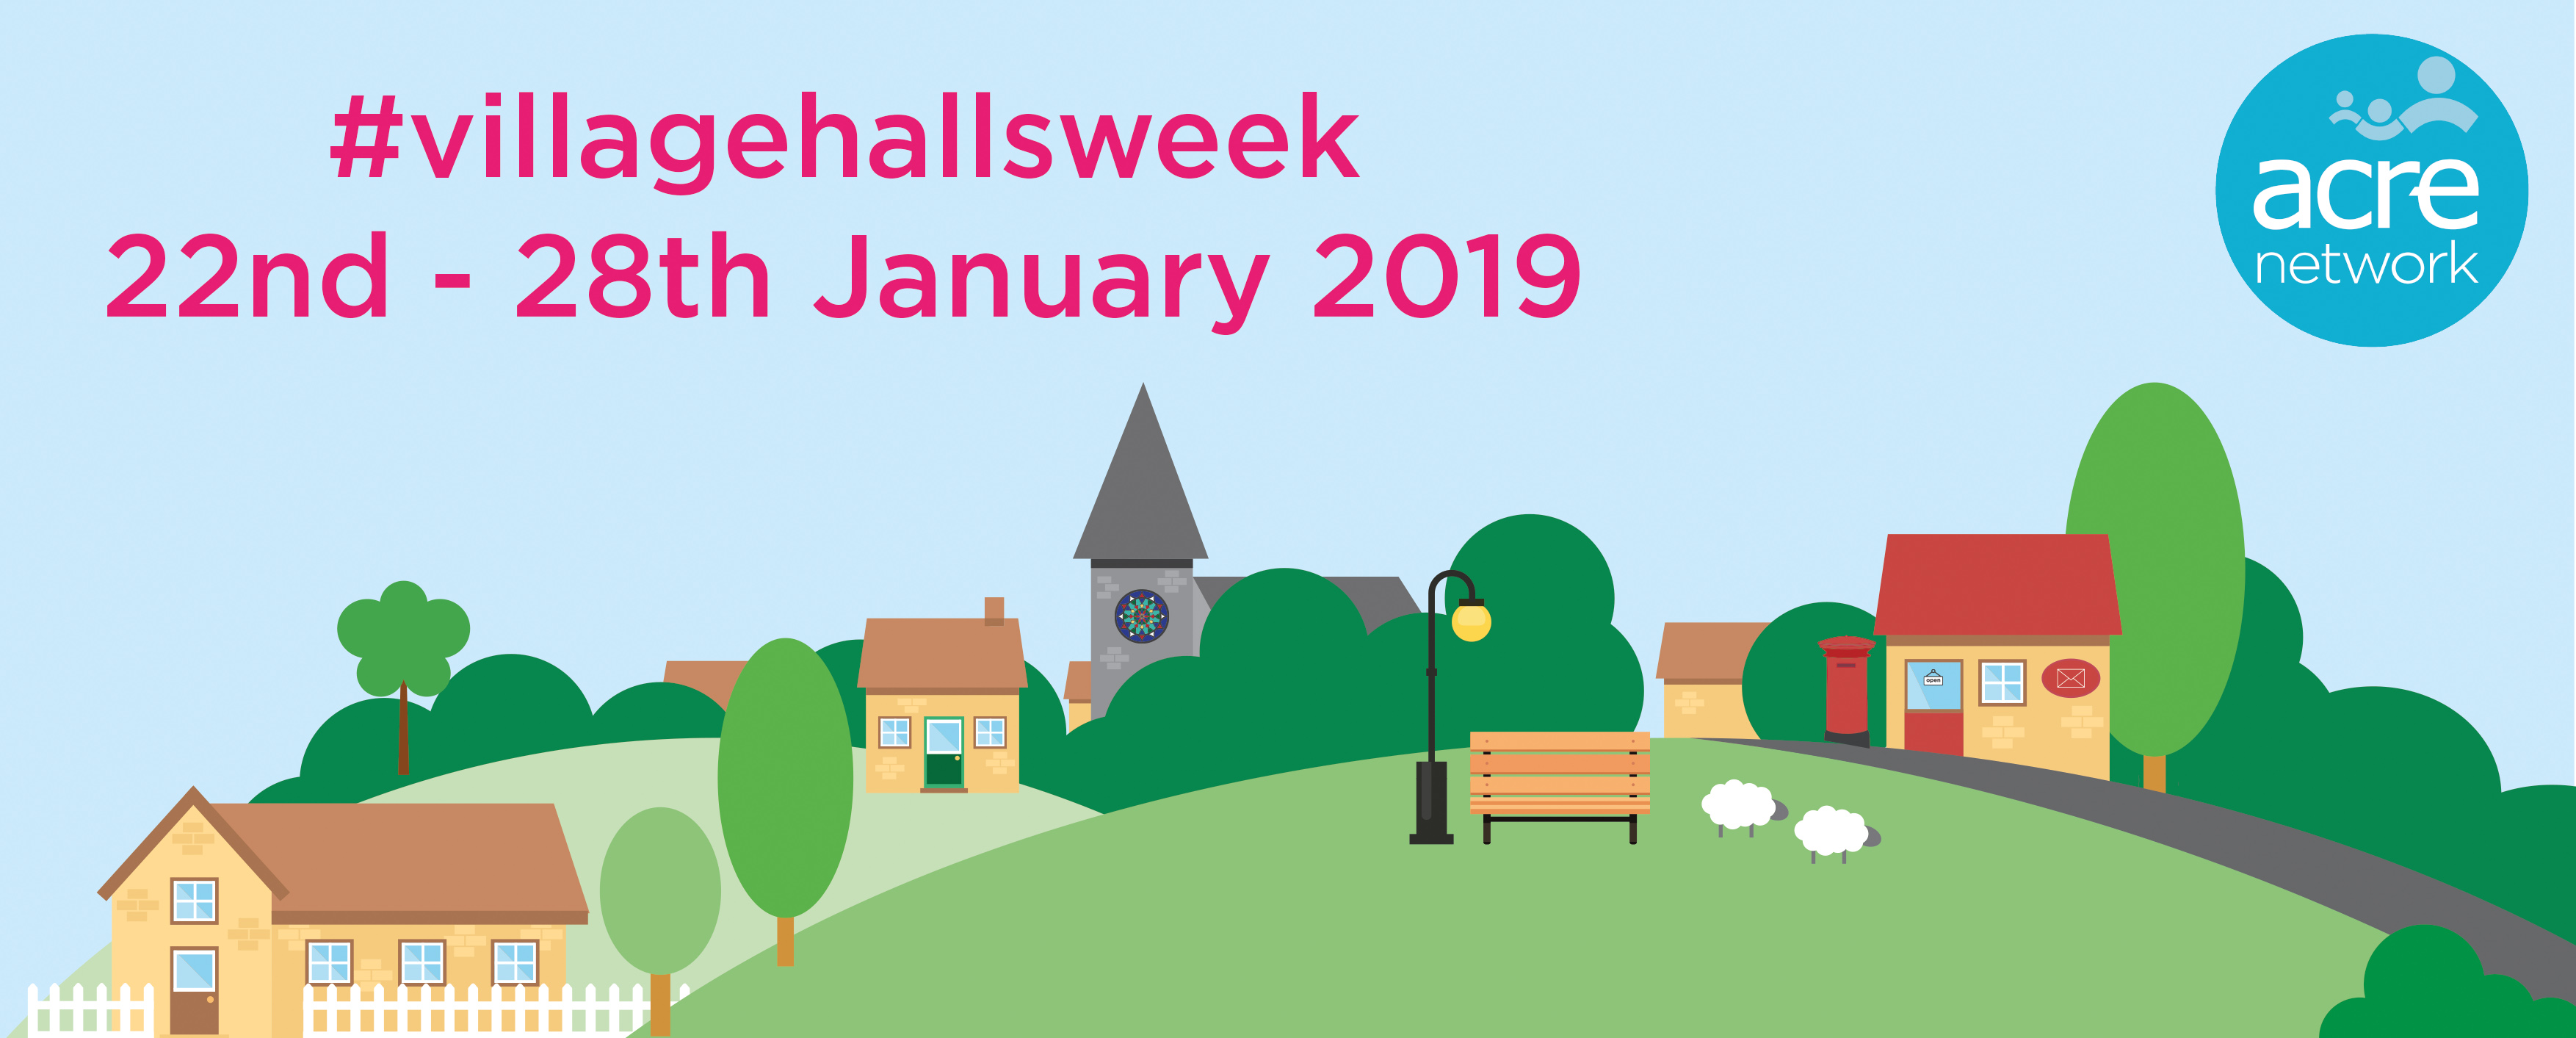 Events planned across county for #VillageHallsWeek featured image